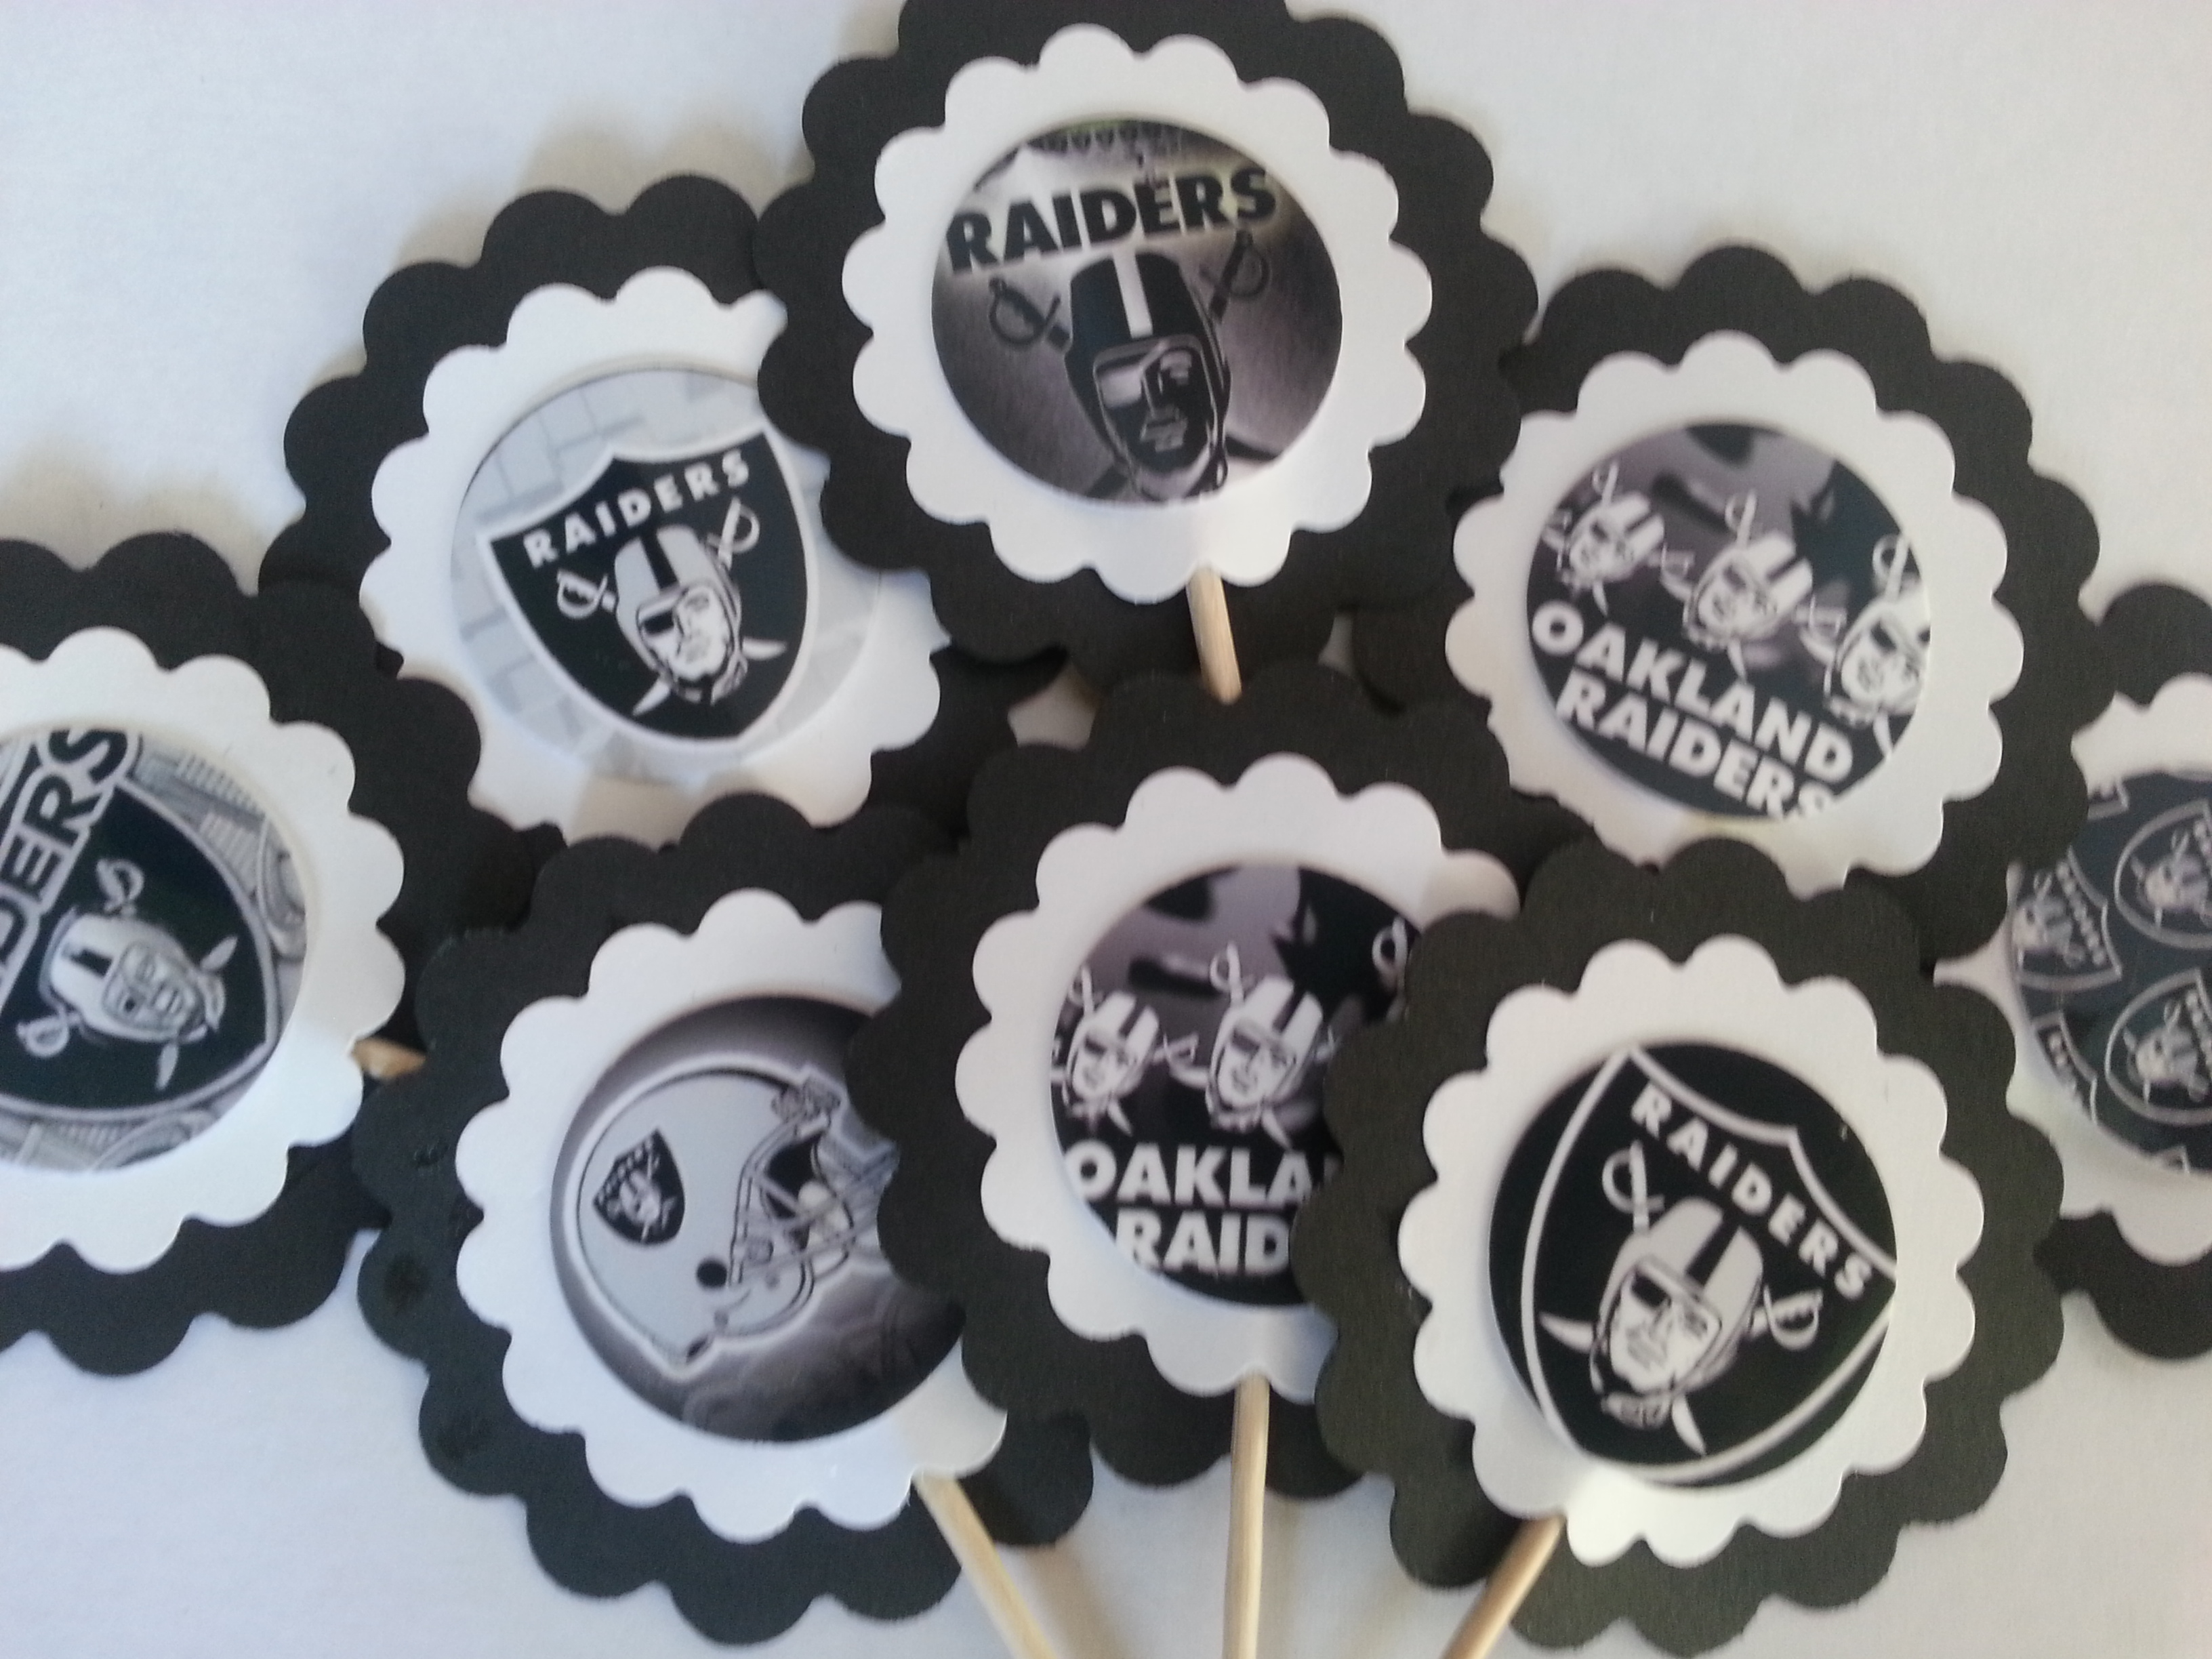 Pleasing Party Supplies 2 Nfl Oakland Raiders Cupcake Toppers Pick Your Funny Birthday Cards Online Inifofree Goldxyz